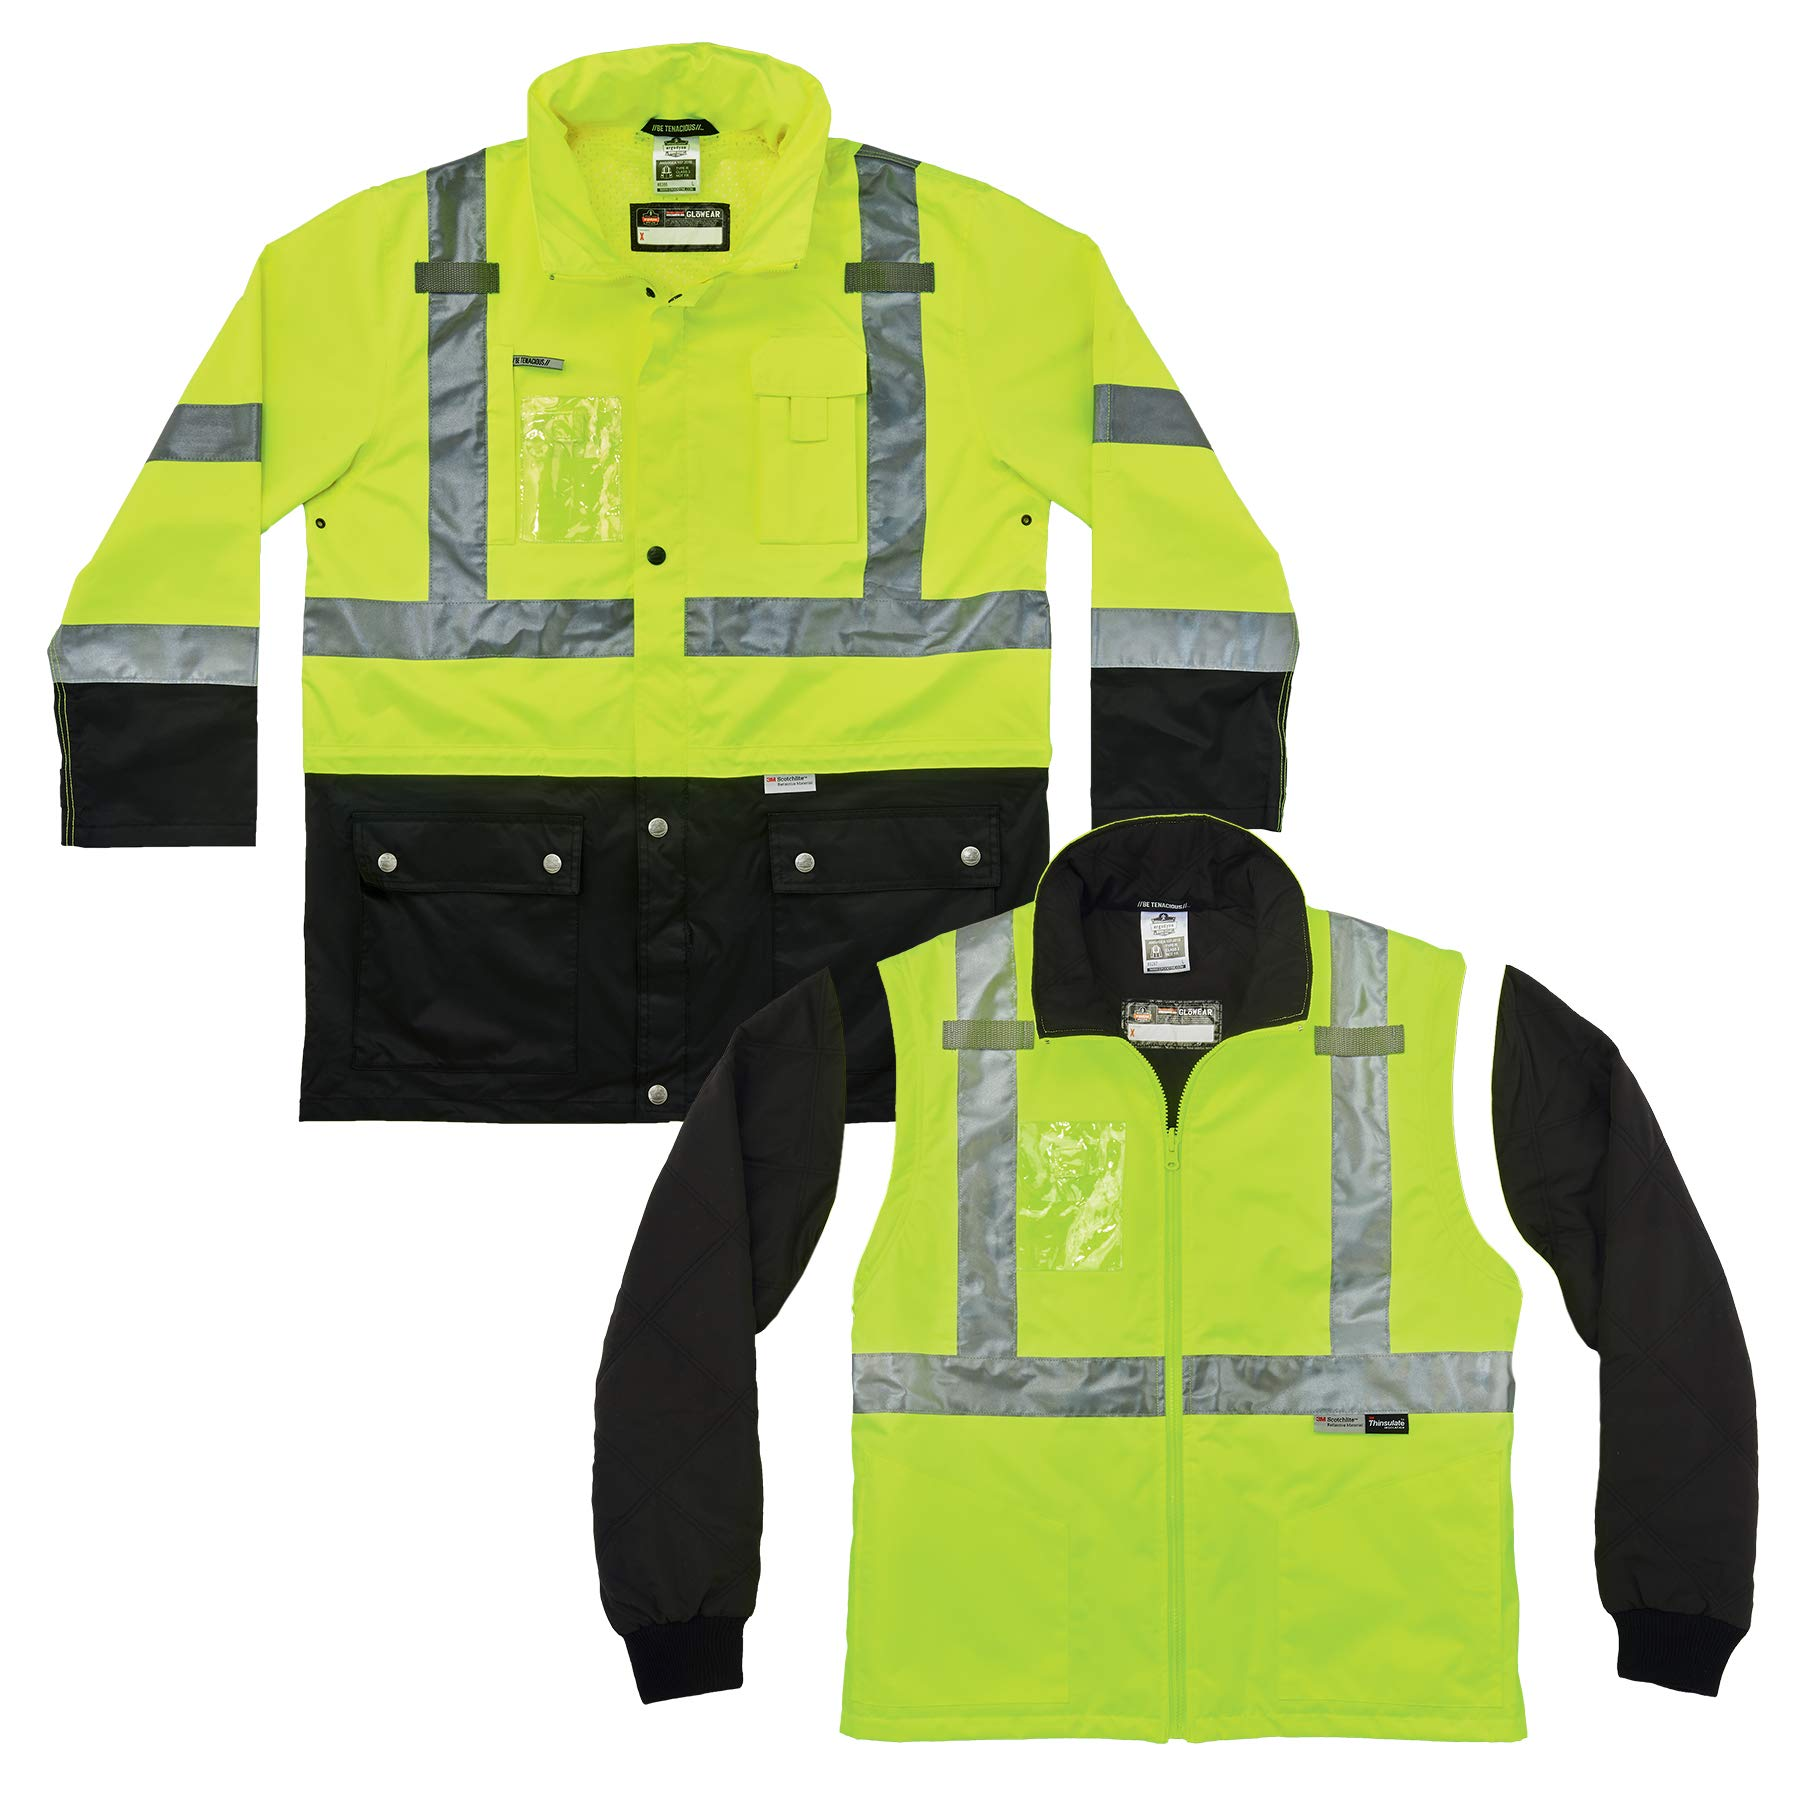 High Visibility Reflective Thermal Jacket Set, Includes Outer Rain Shell & Thermal Jacket with Zip Off Sleeves, Ergodyne GloWear 8388